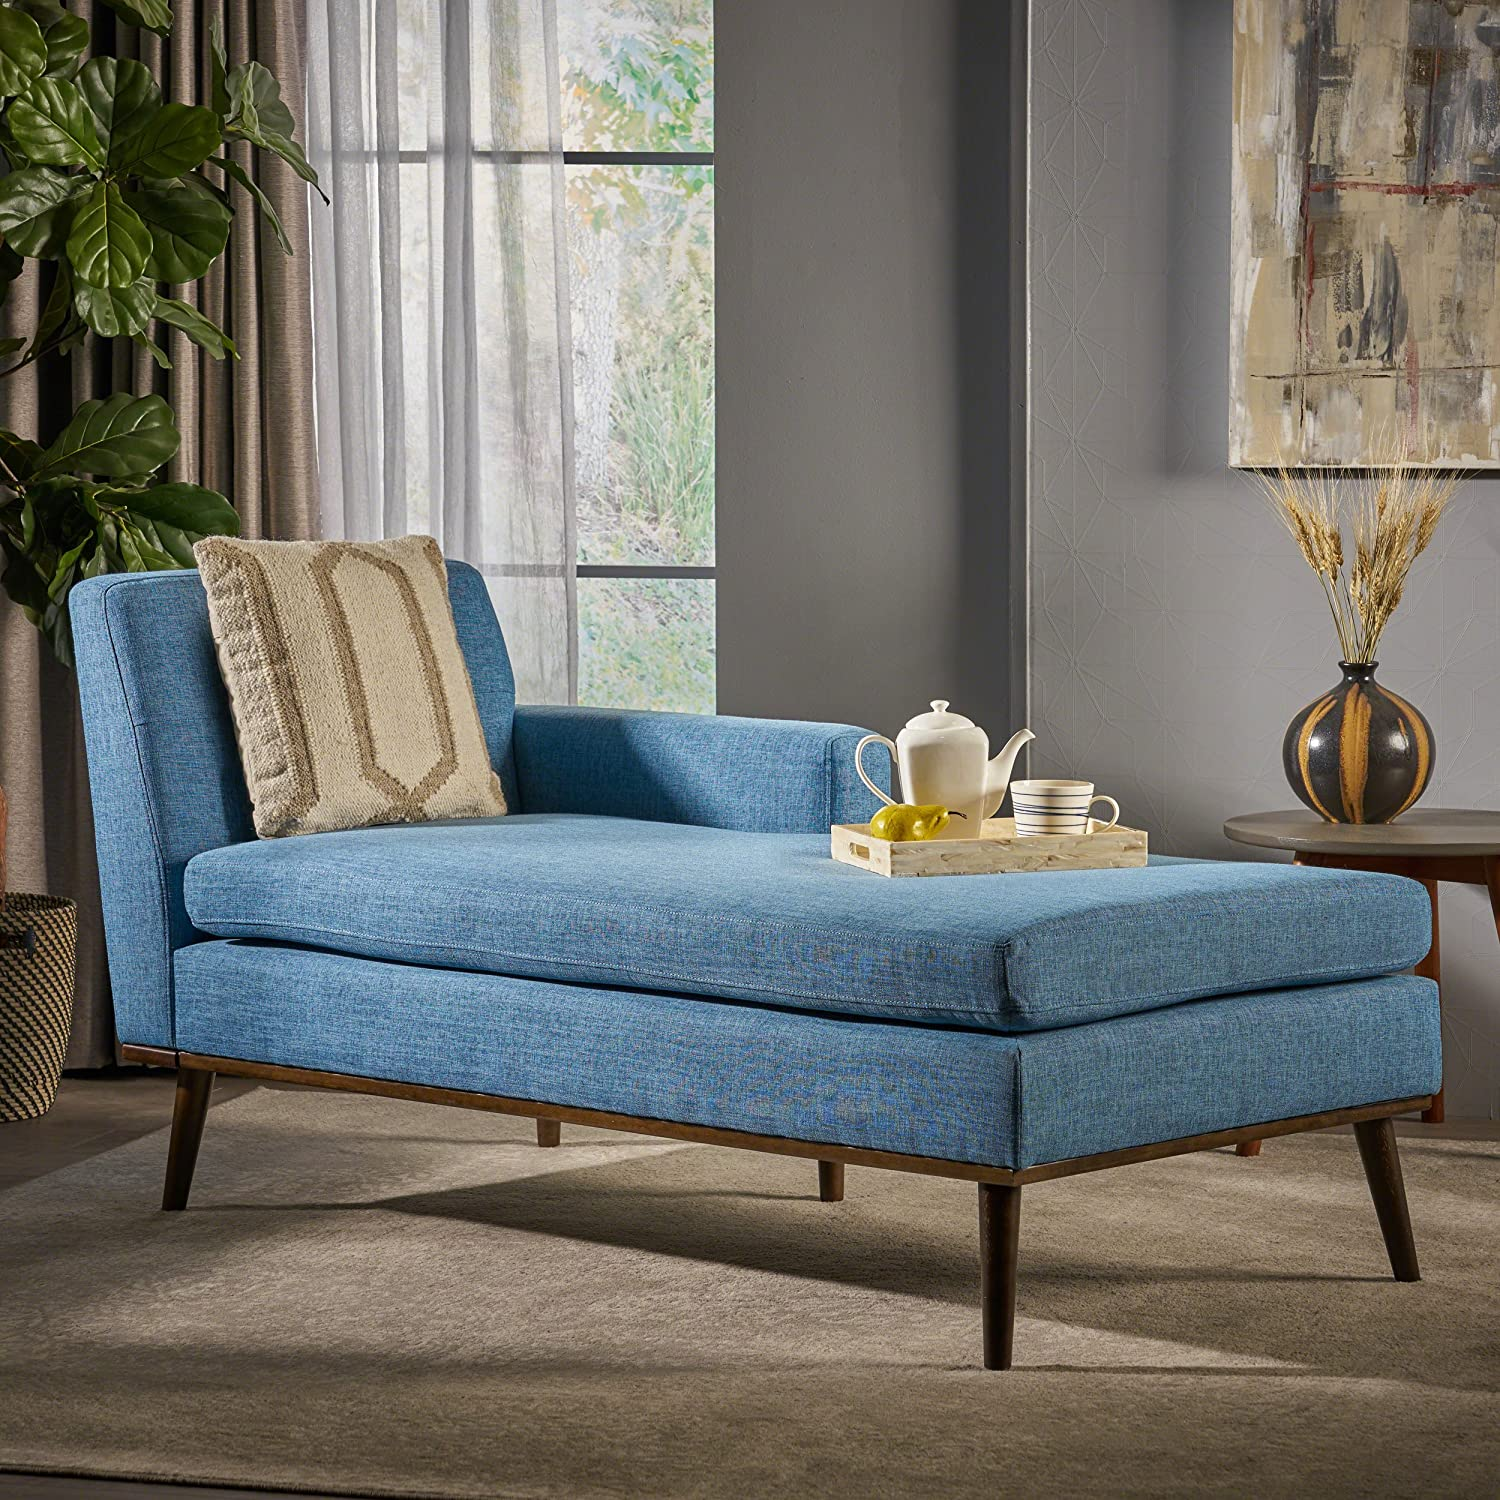 Walnut Great Deal Furniture 304046 Sophia Mid Century Modern Muted Blue Fabric Chaise Lounge